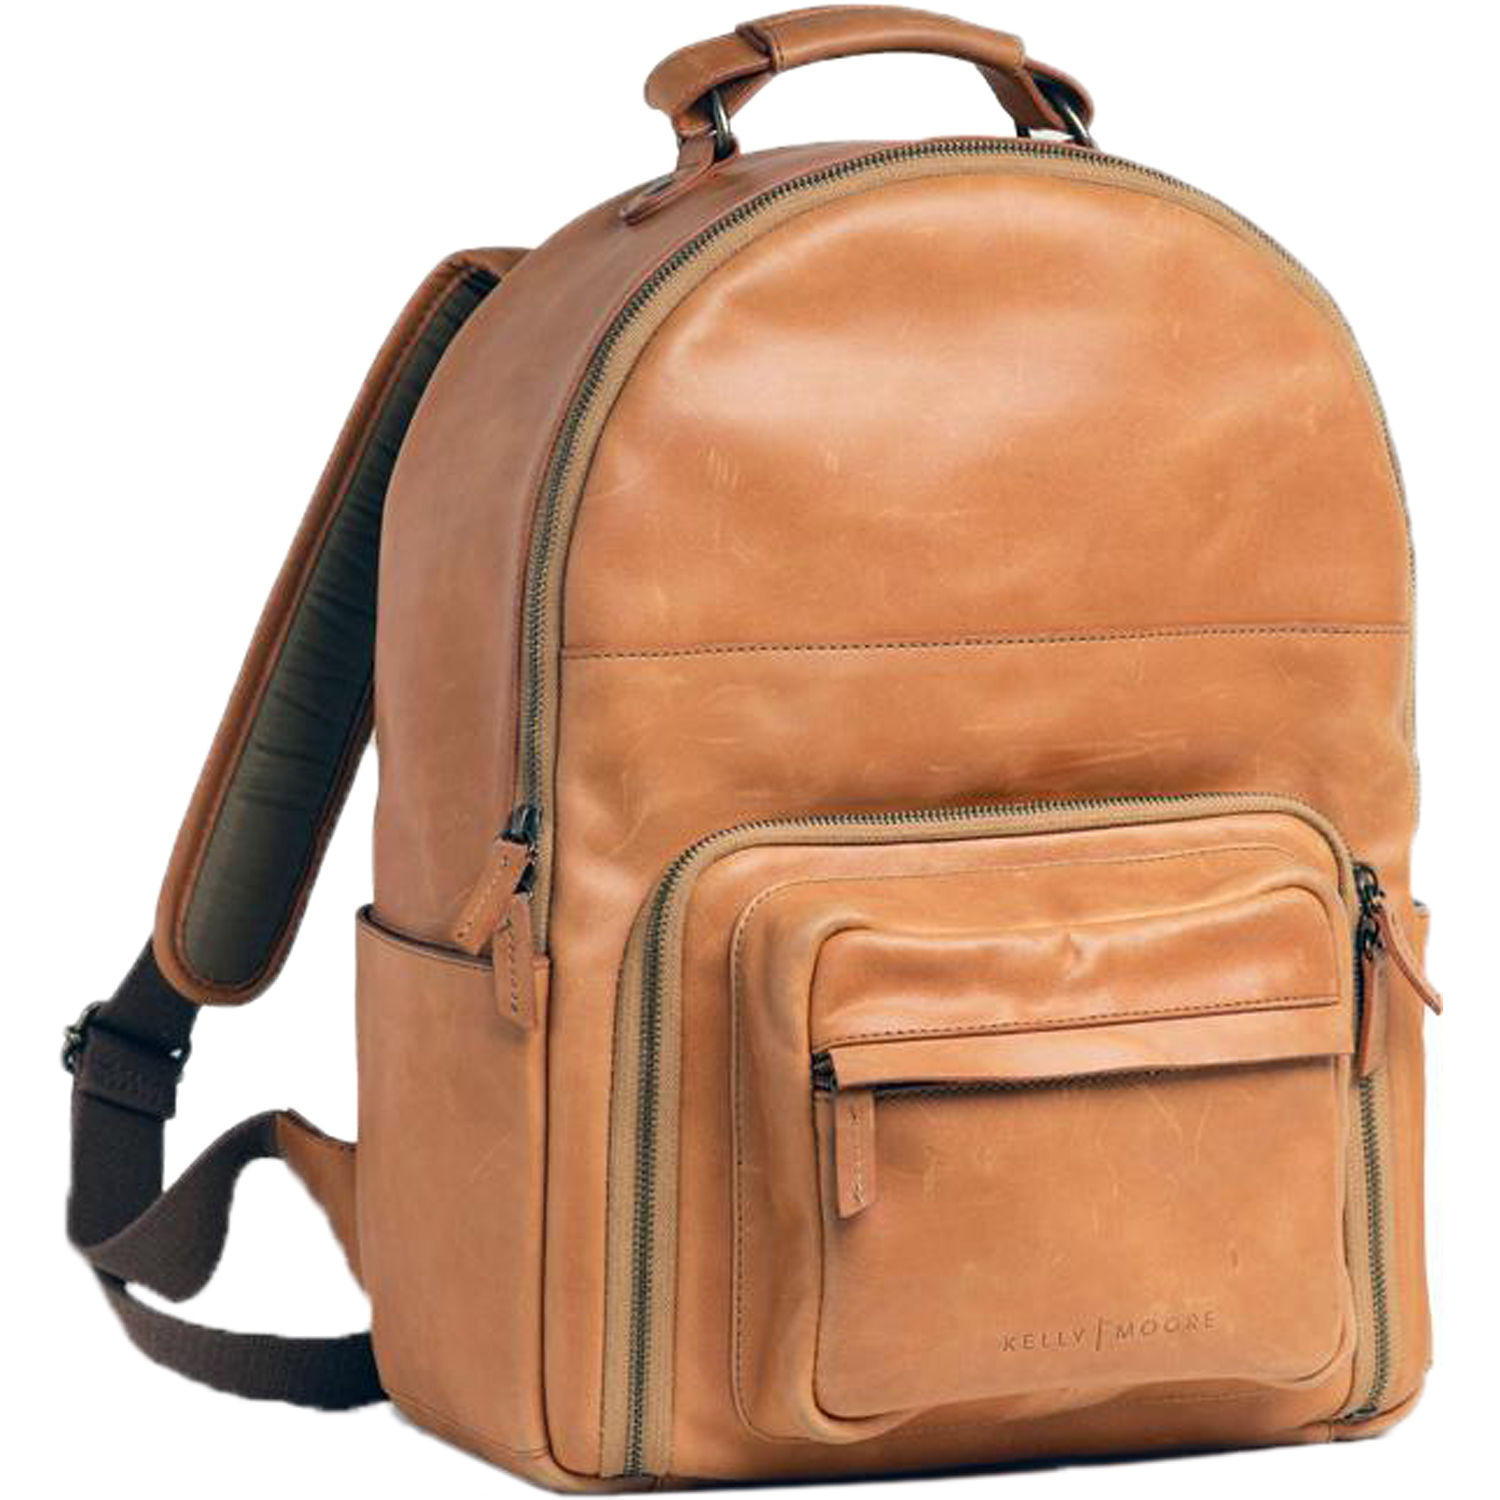 Kelly Moore Bag The Tourist Full Grain Leather Camera Backpack Light Brown